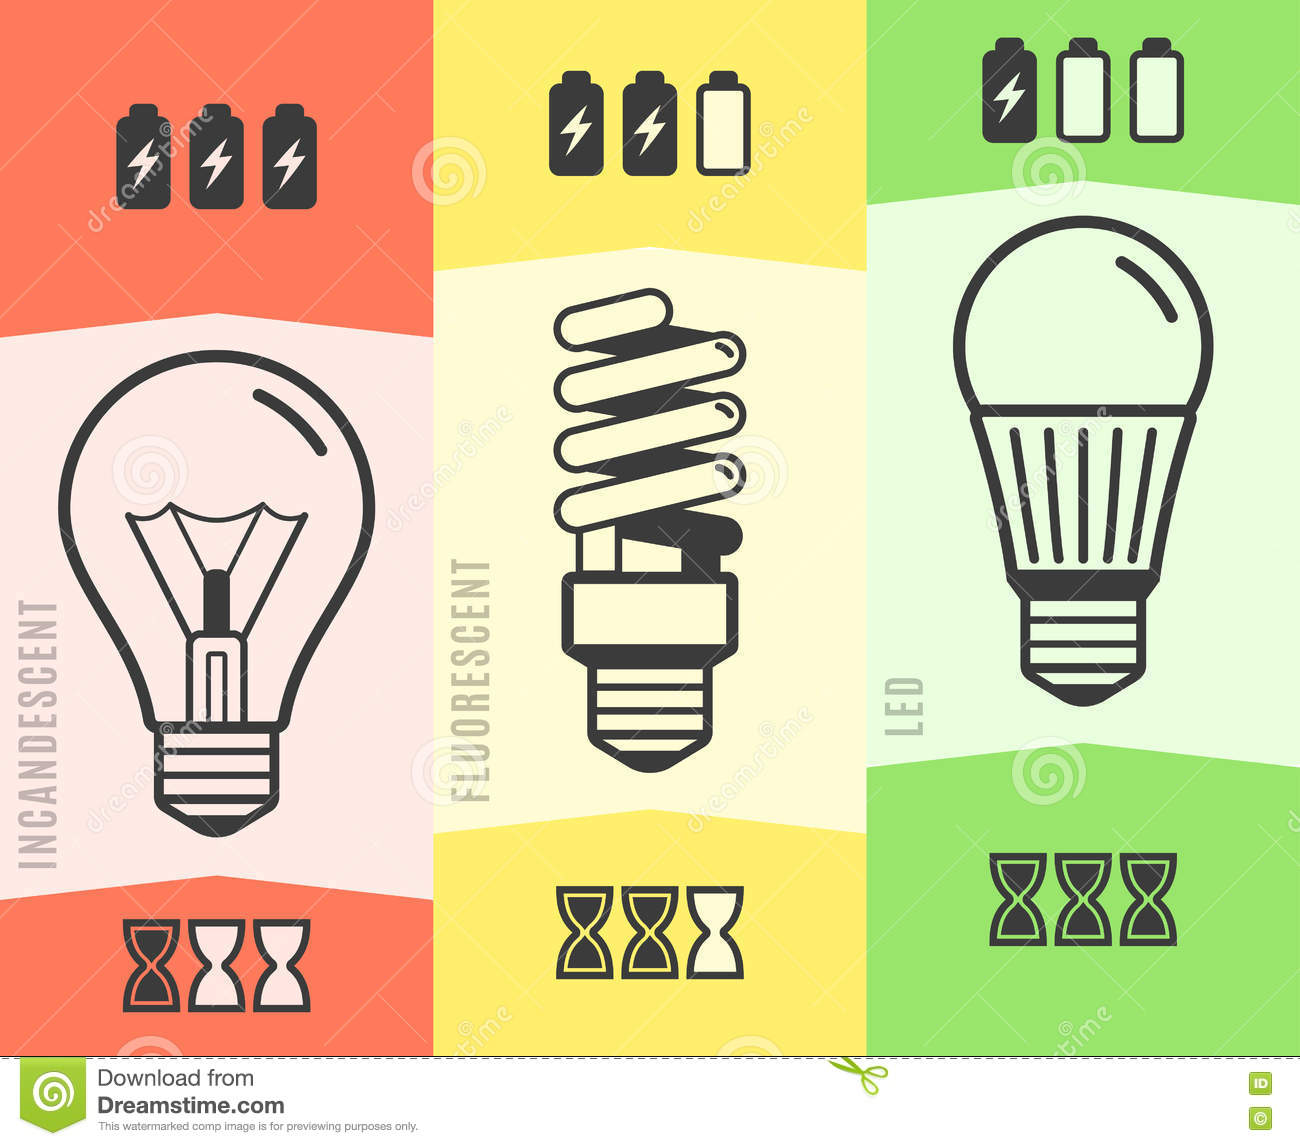 hight resolution of light bulb efficiency comparison chart infographic vector illustration